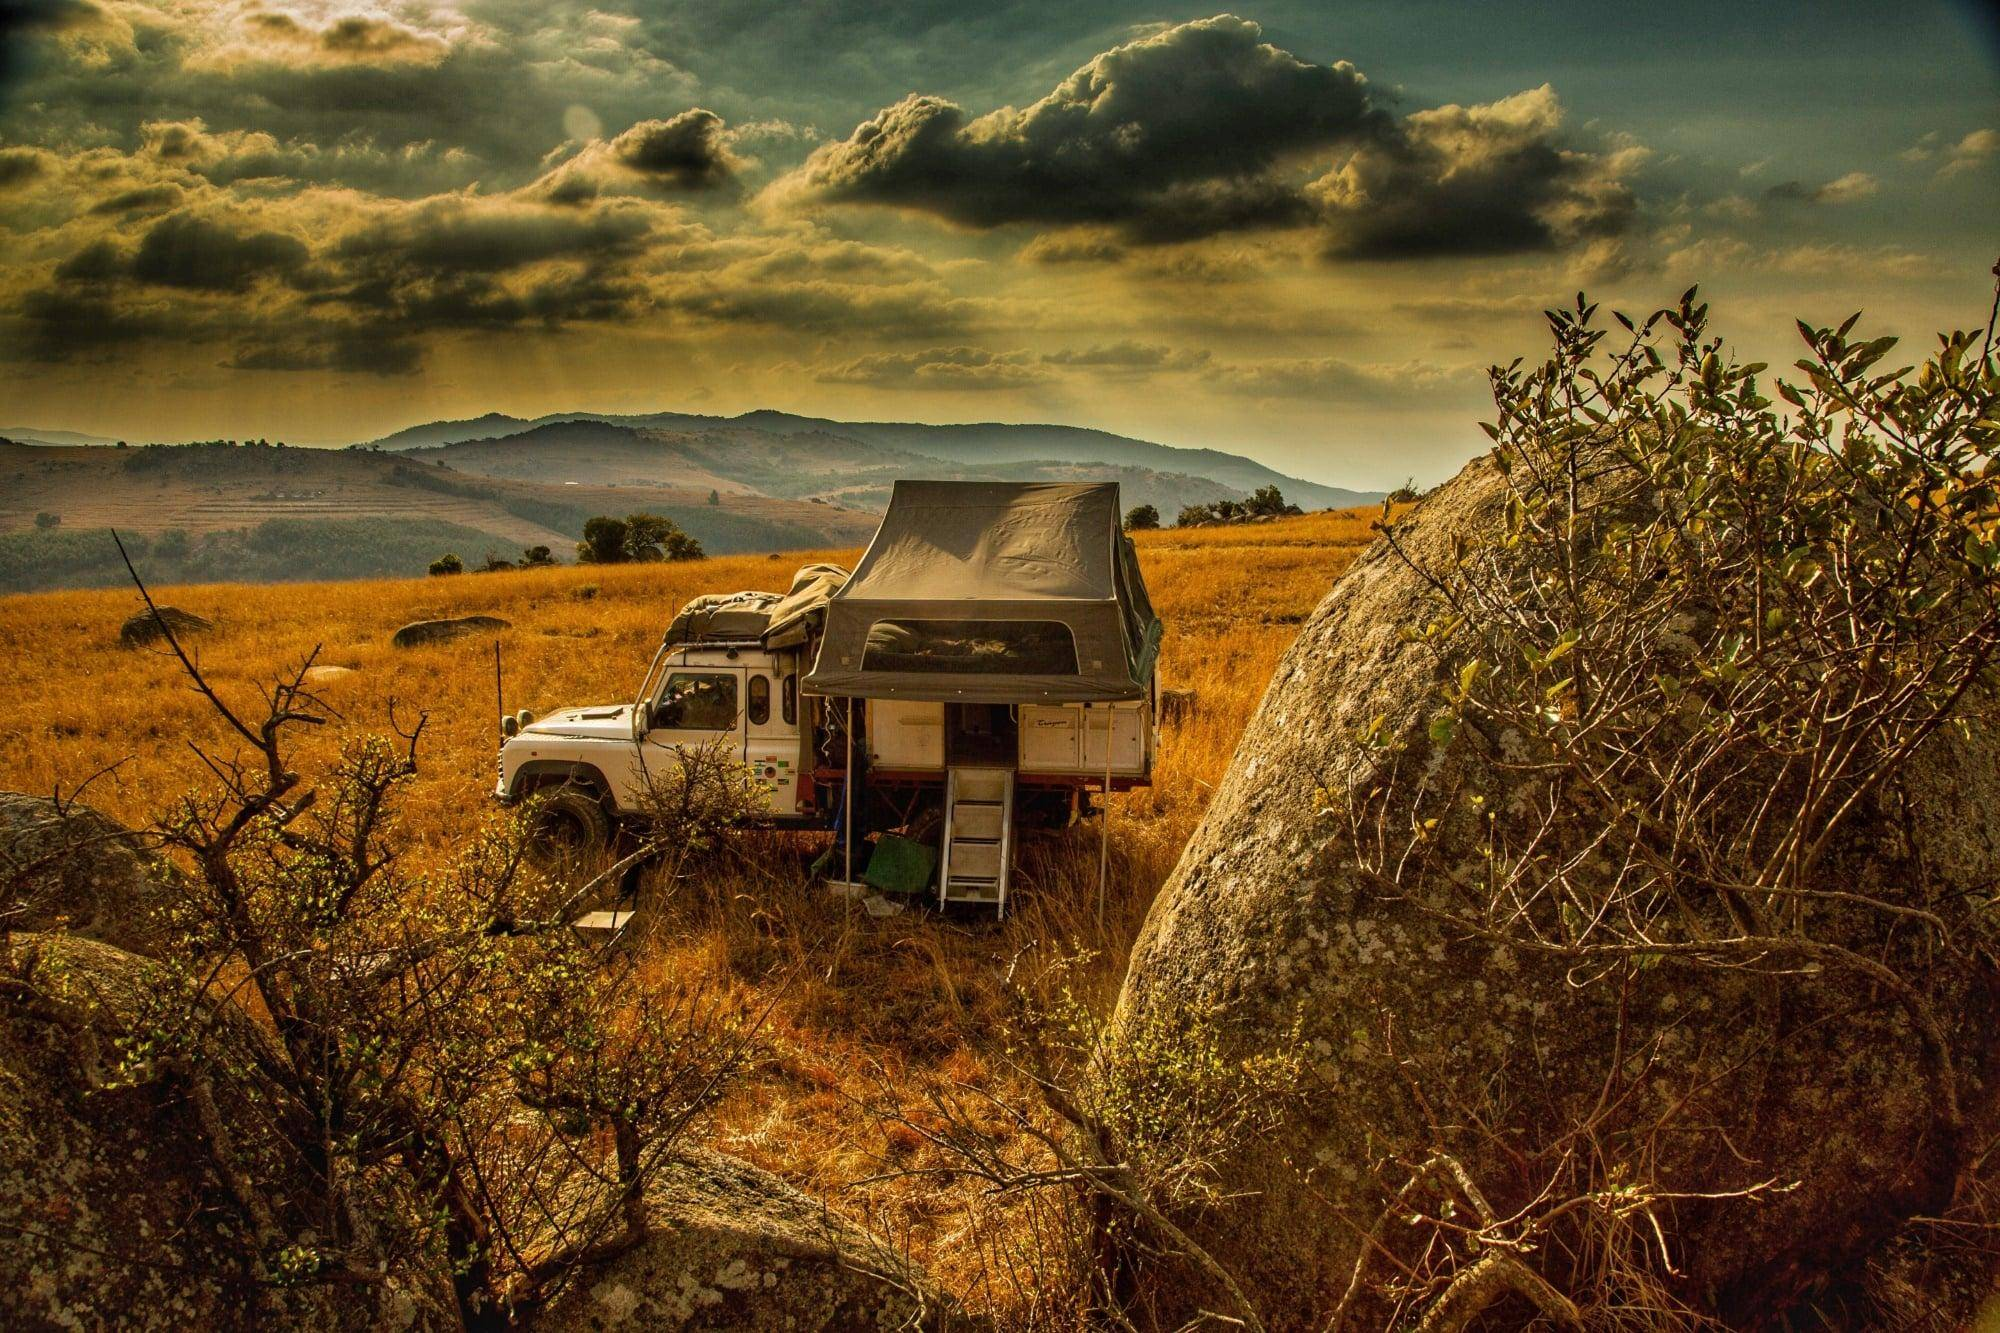 The Camping Essentials Checklist For The Wild West ...